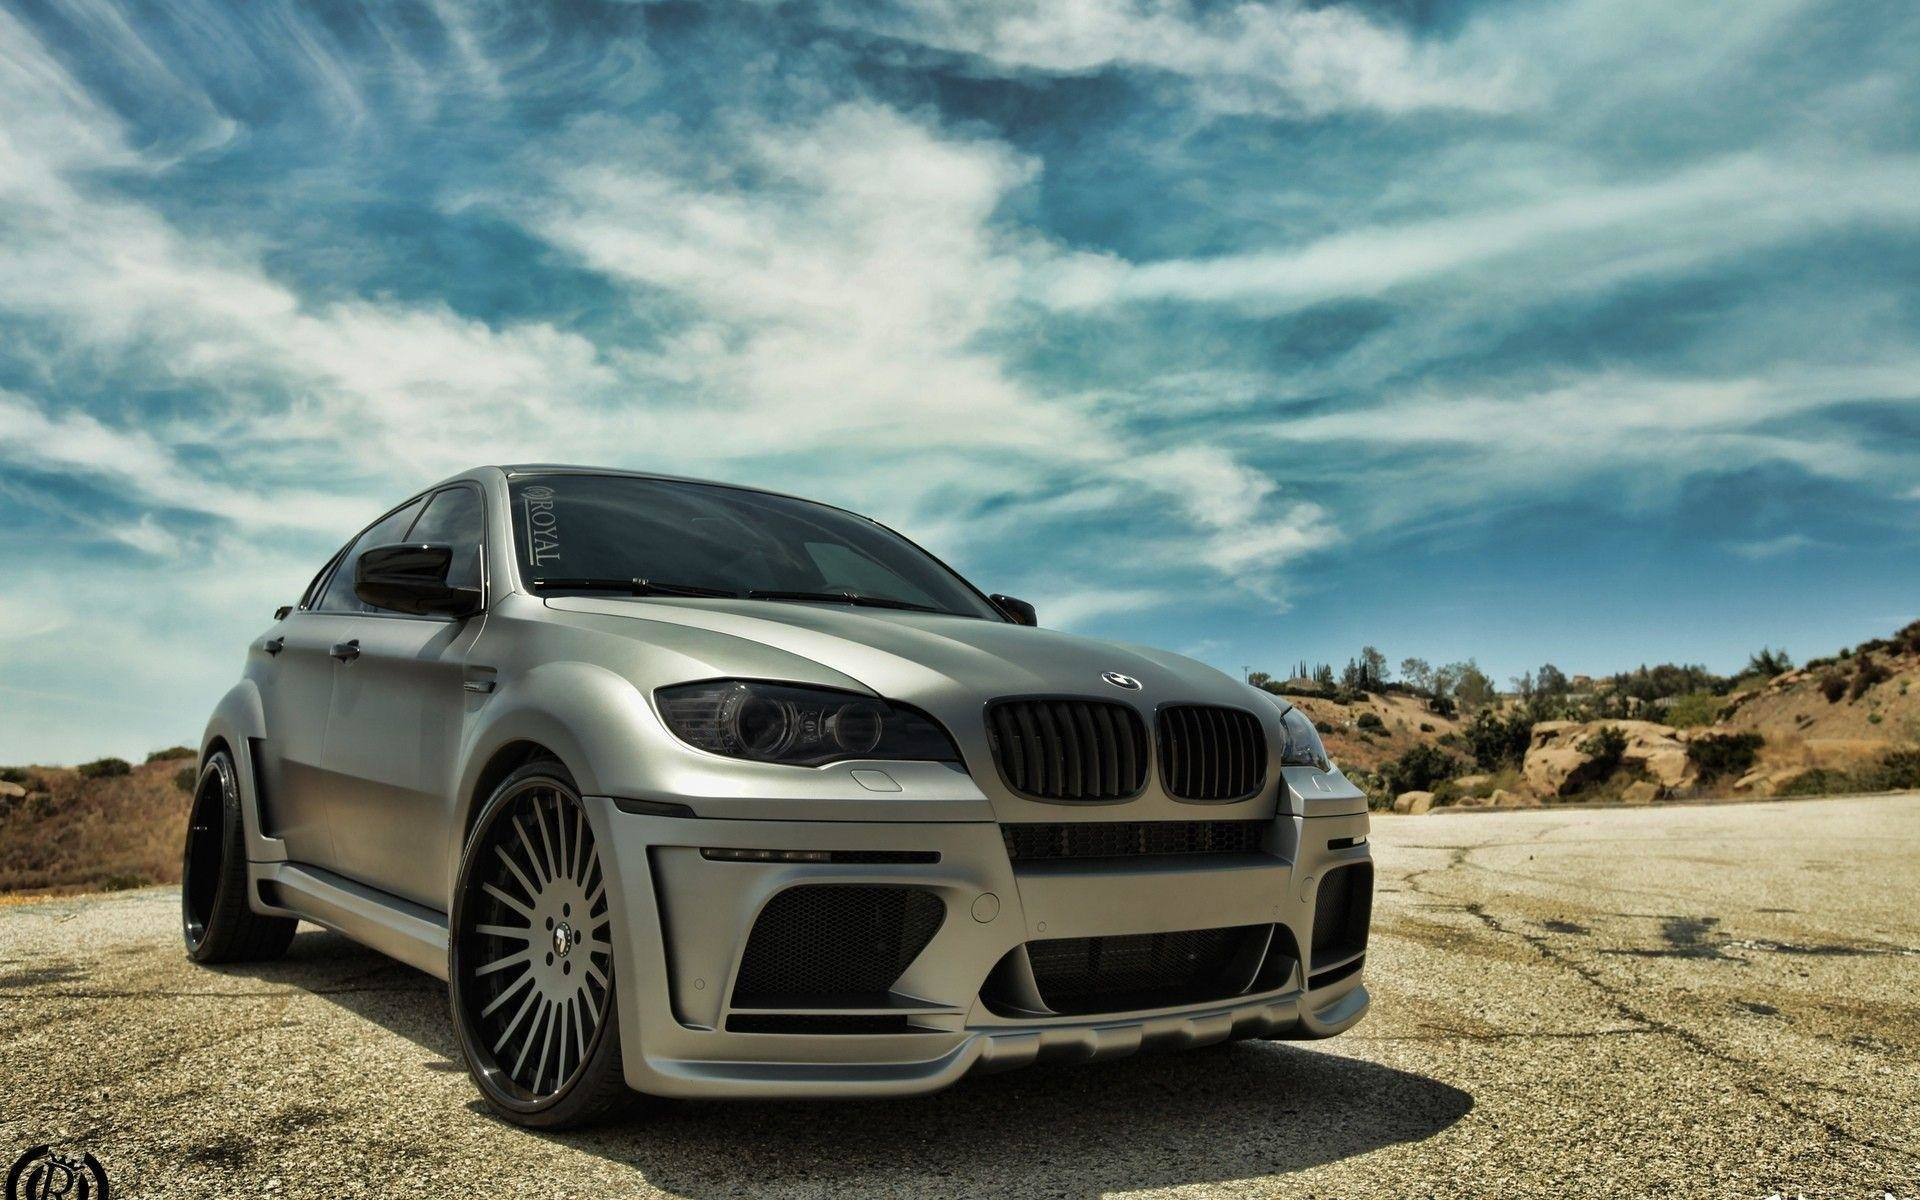 Latest Bmw X6 Wallpapers Wallpaper Cave Free Download